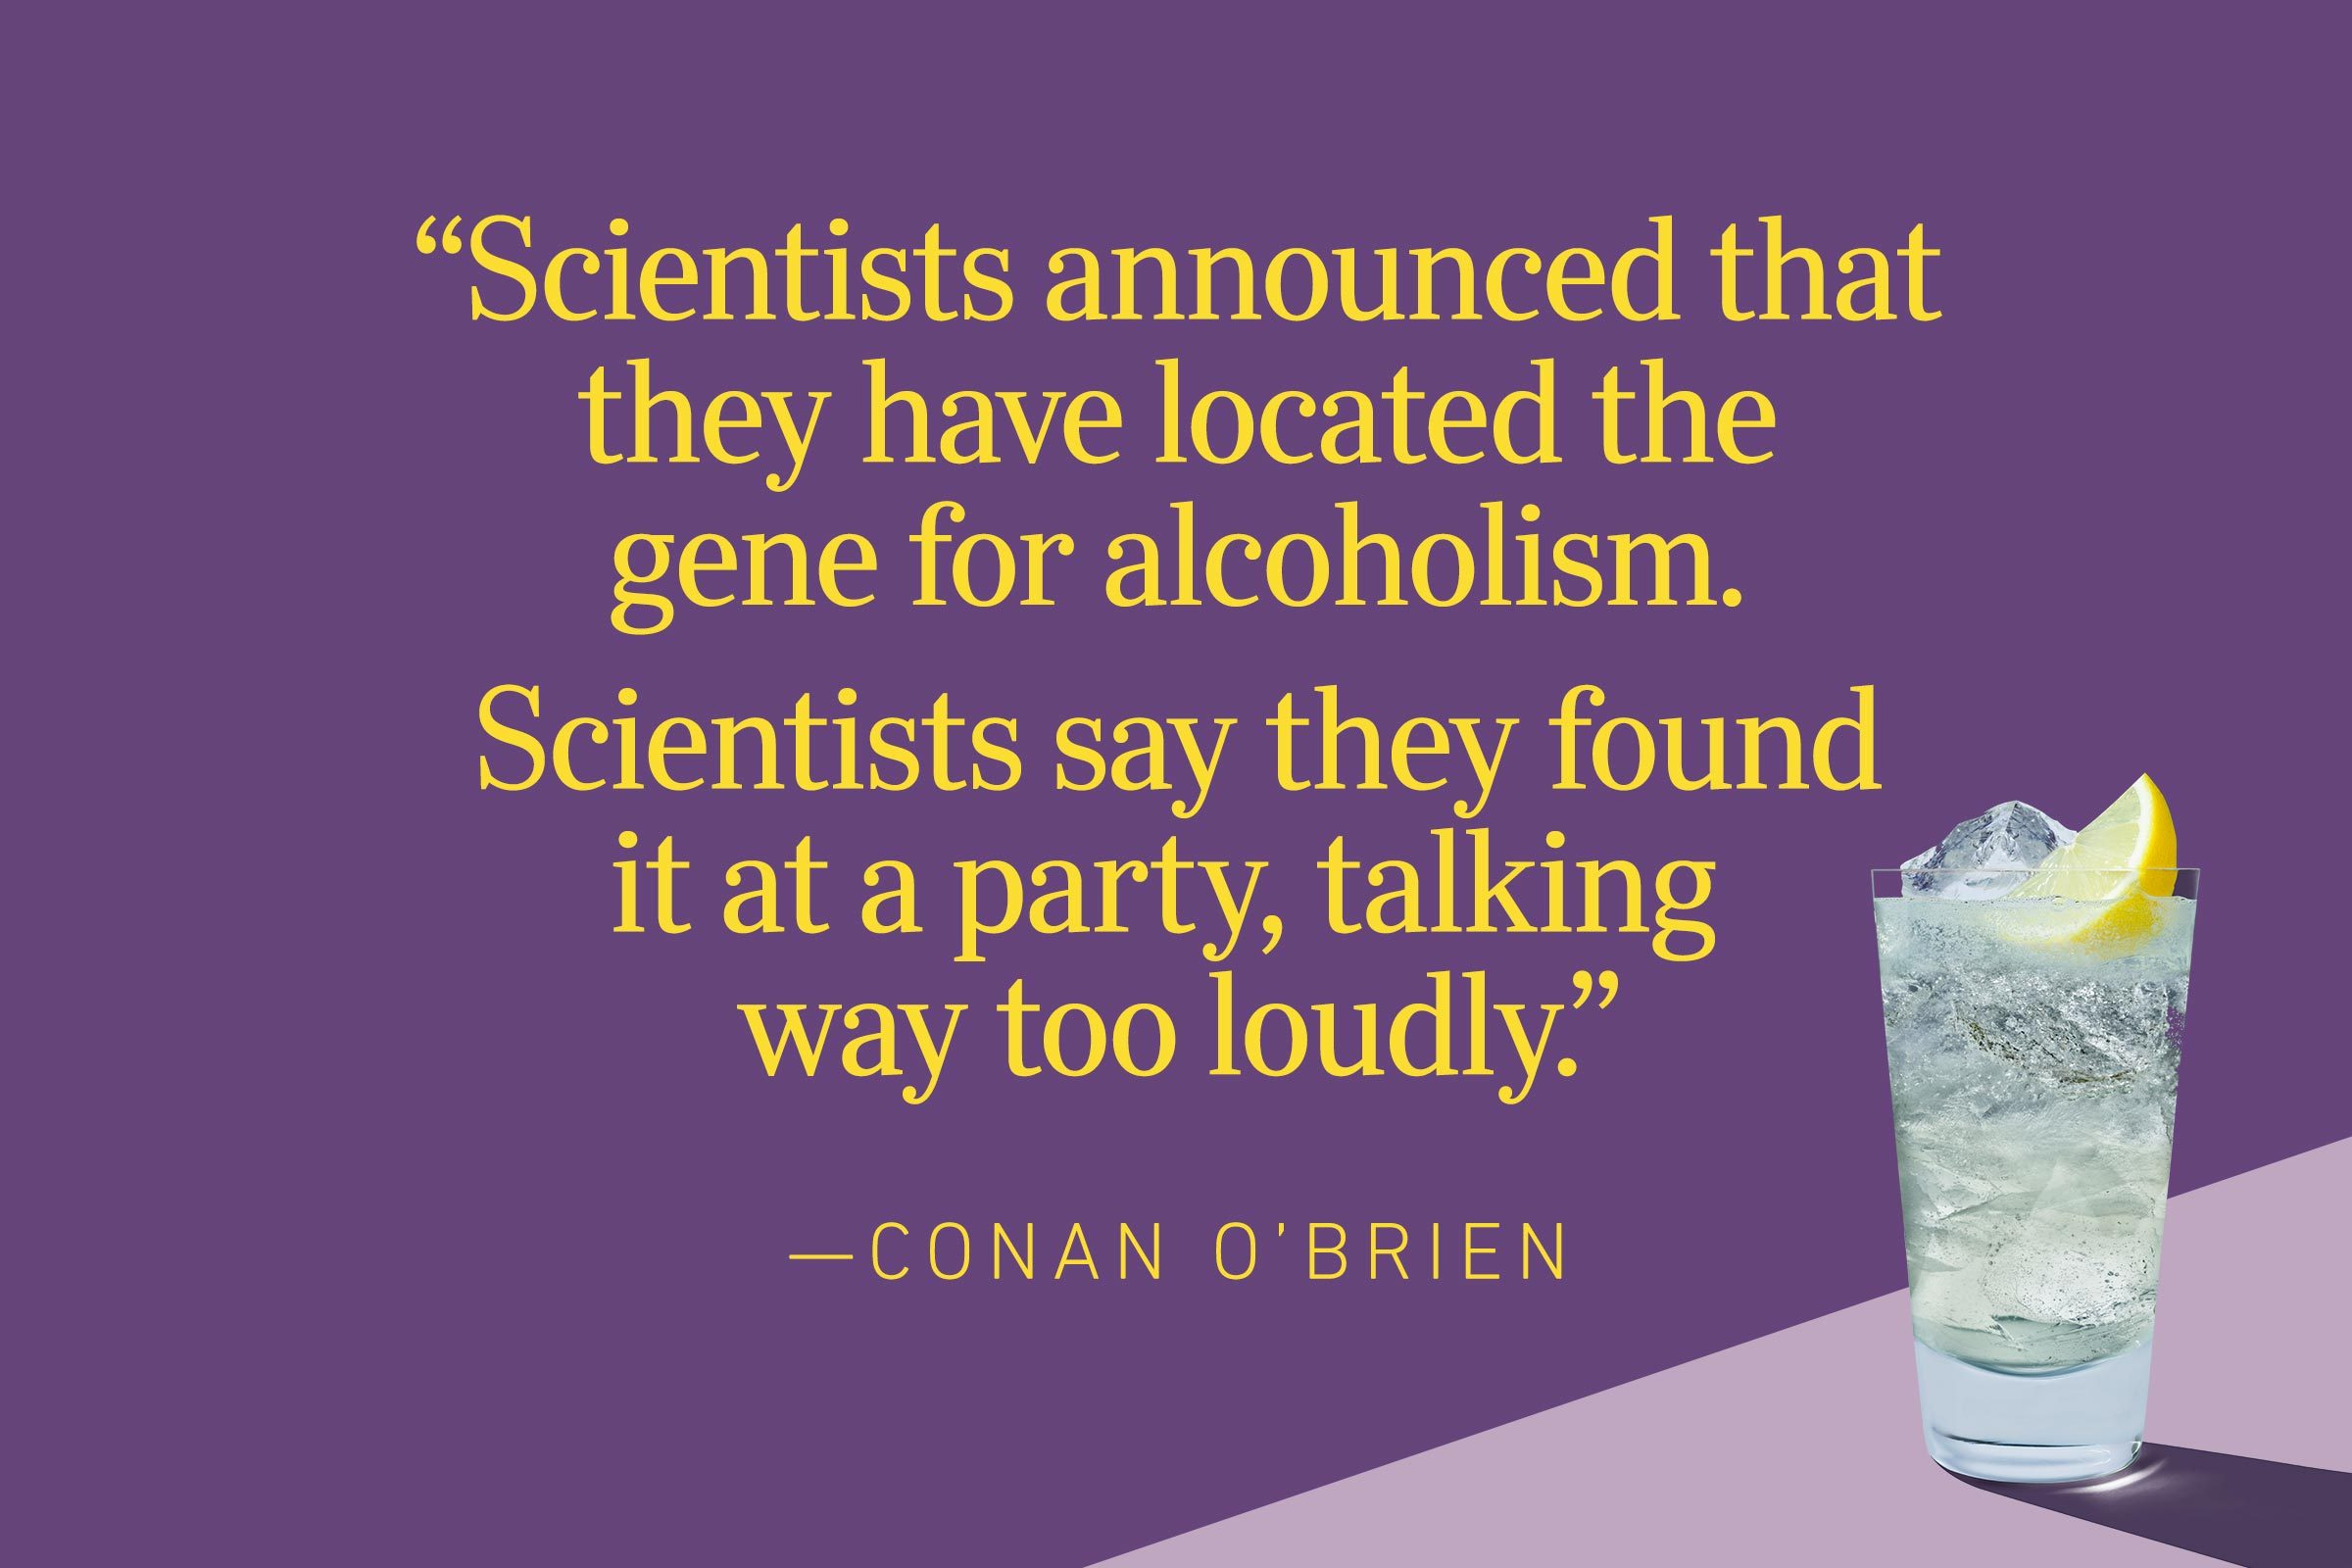 """""""Scientists announced that they have located the gene for alcoholism. Scientists say they found it at a party, talking way too loudly.""""—Conan O'Brien"""